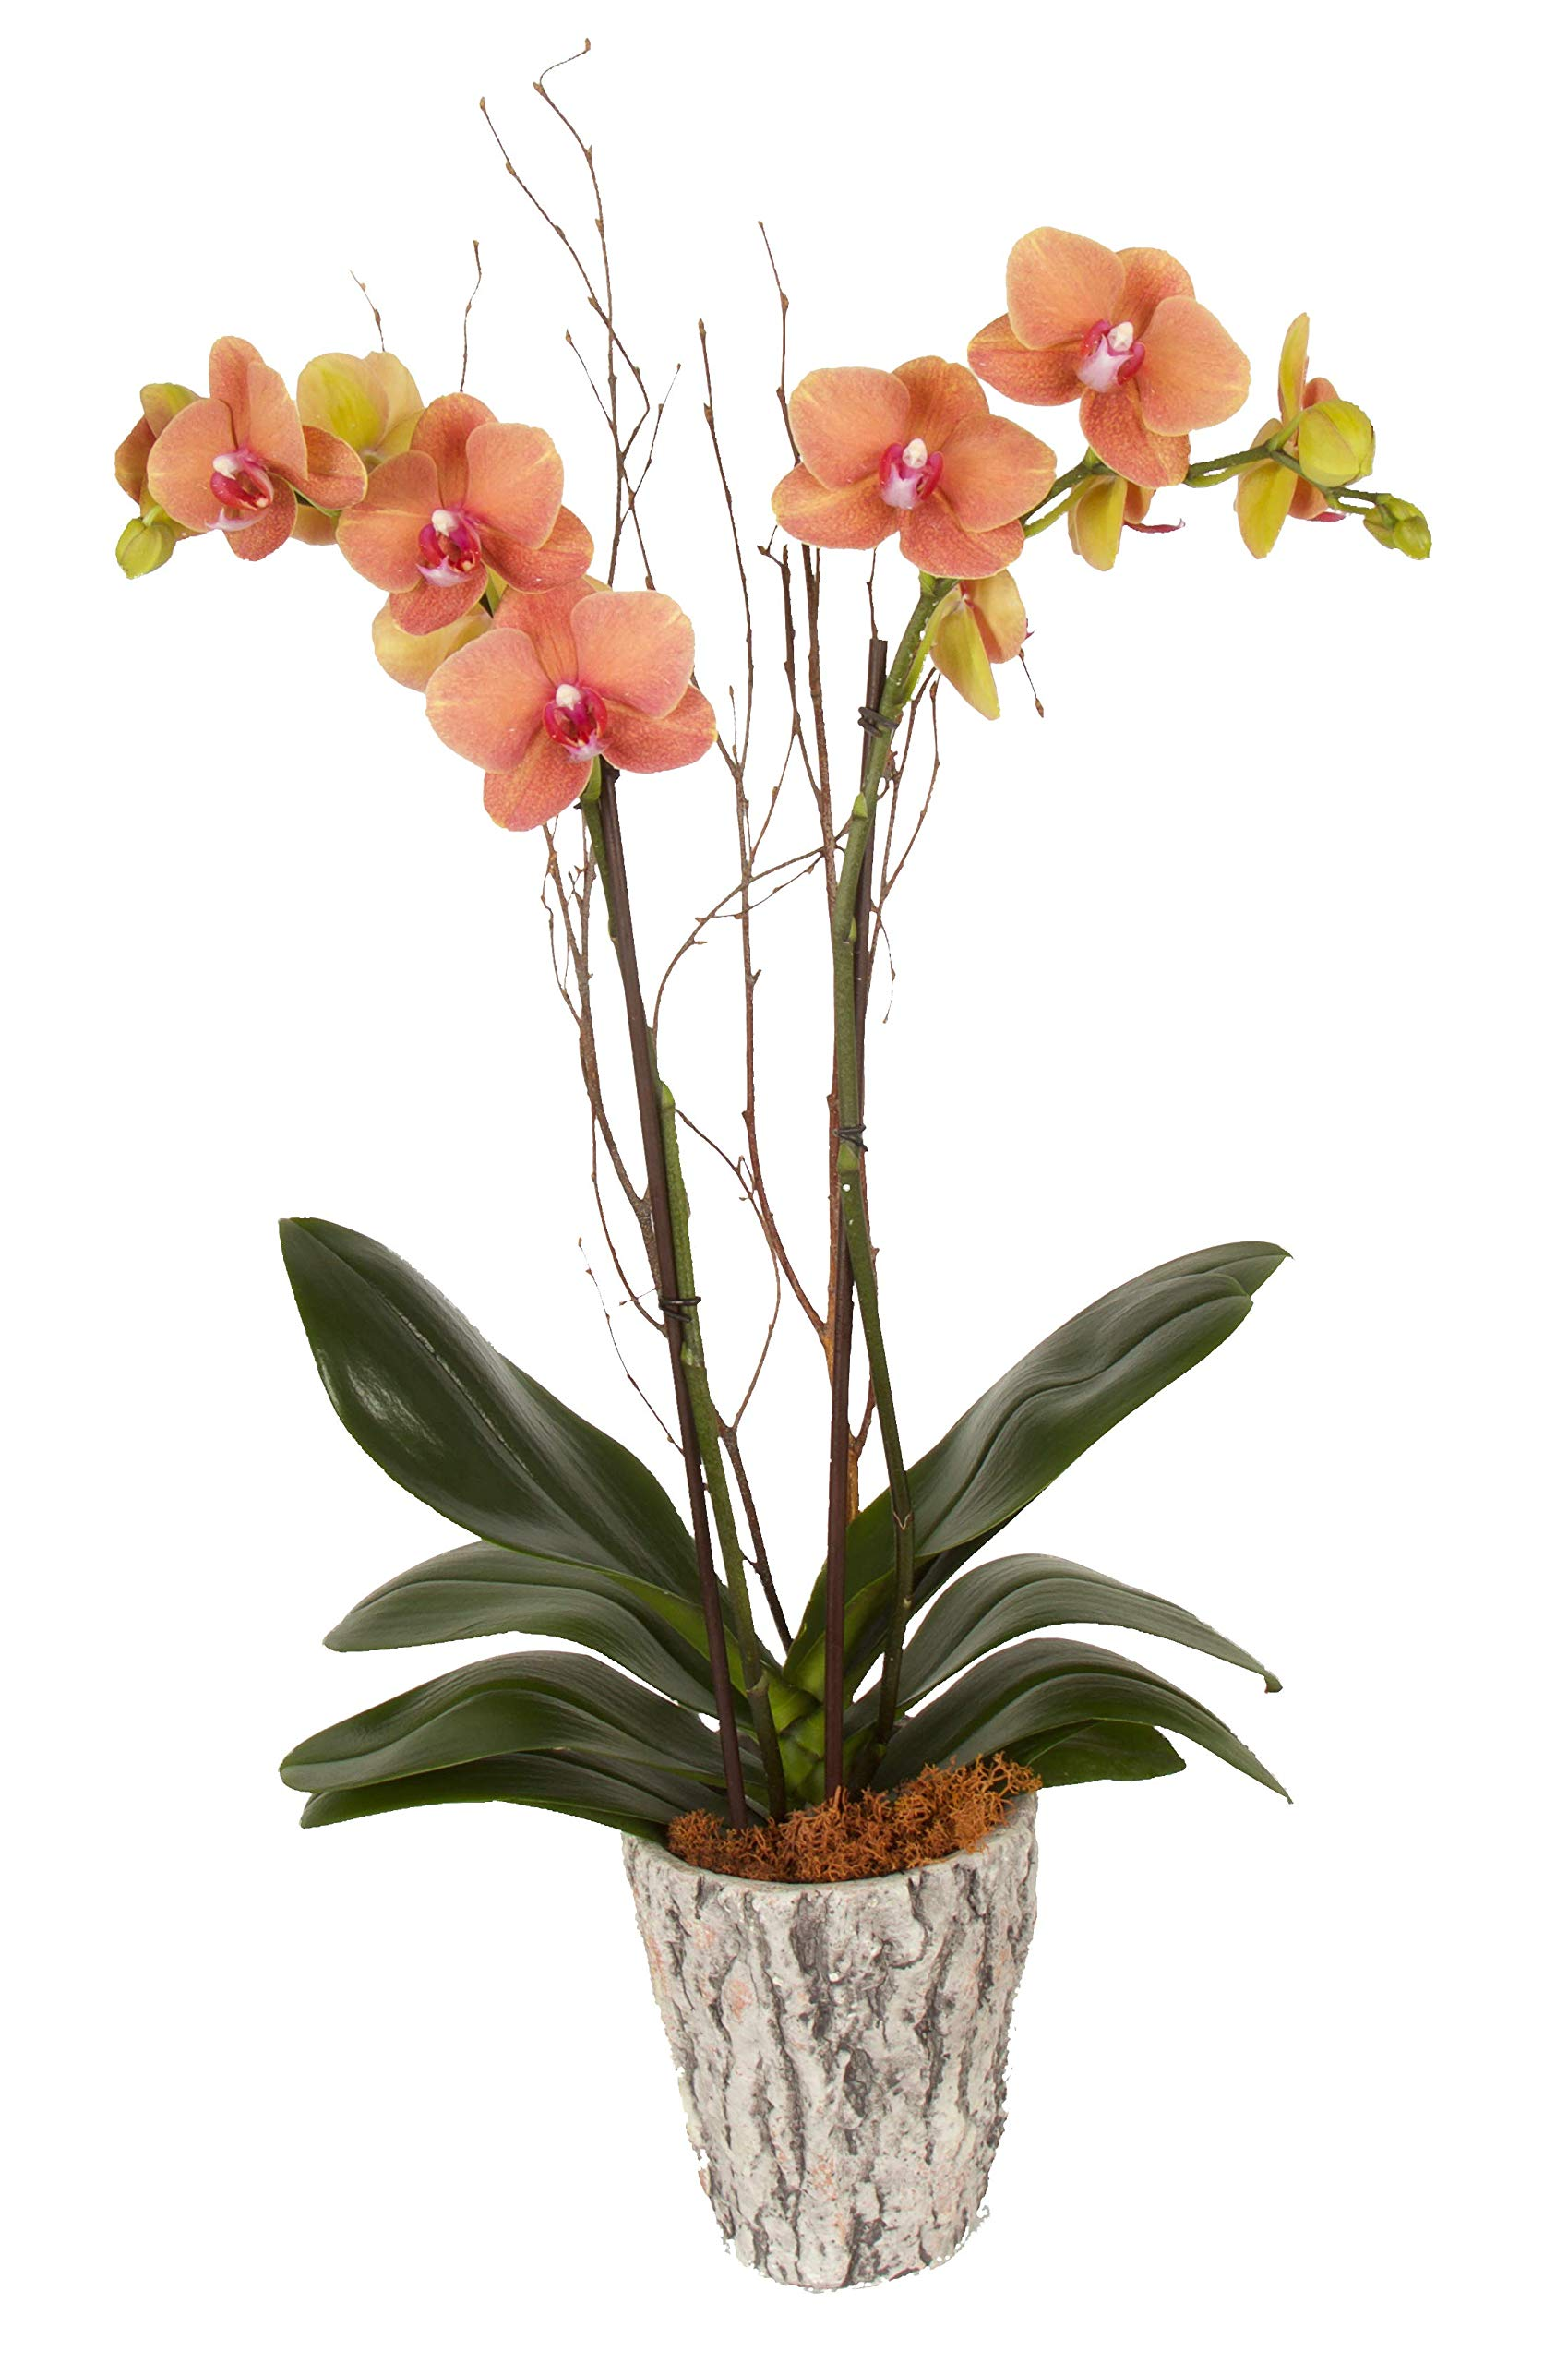 Color Orchids AMZ3101FBO Live Fall Double Stem, 20'' x 24'' Tall, Orange Blooms Orchid Plant in Ceramic Pot,